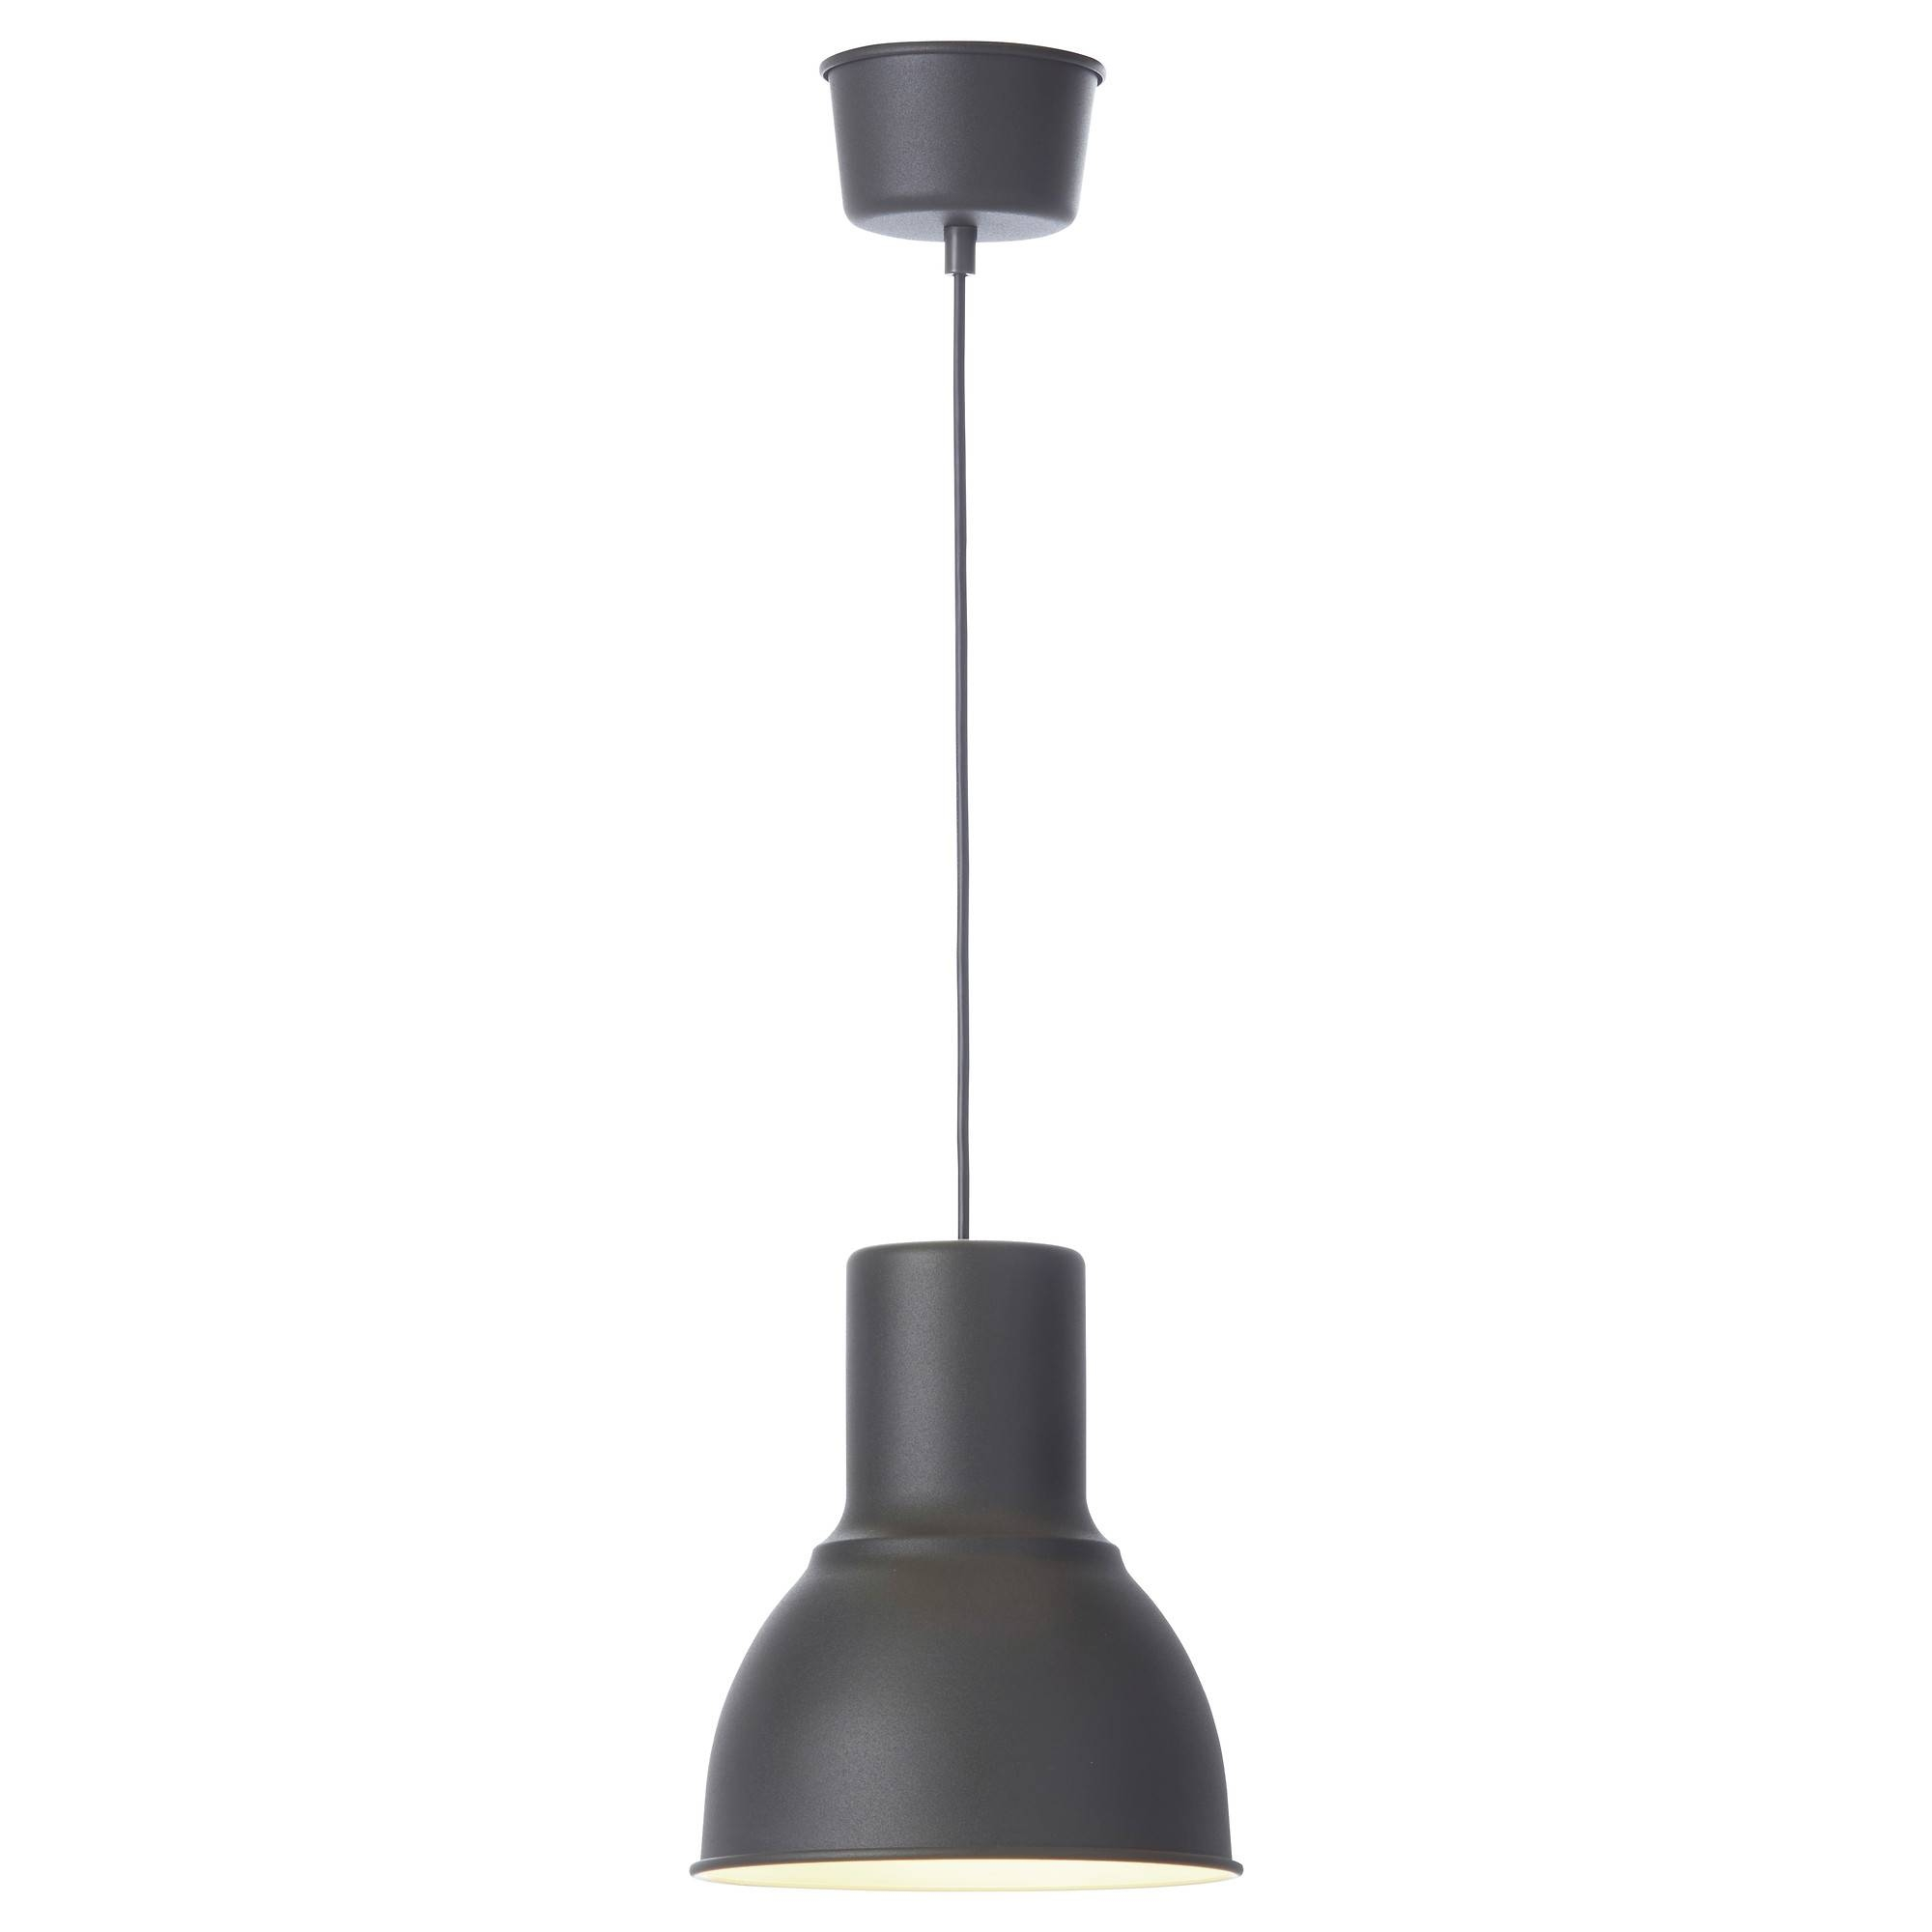 Ceiling Lights & Lamps – Ikea With Regard To Ikea Globe Lights (View 3 of 15)